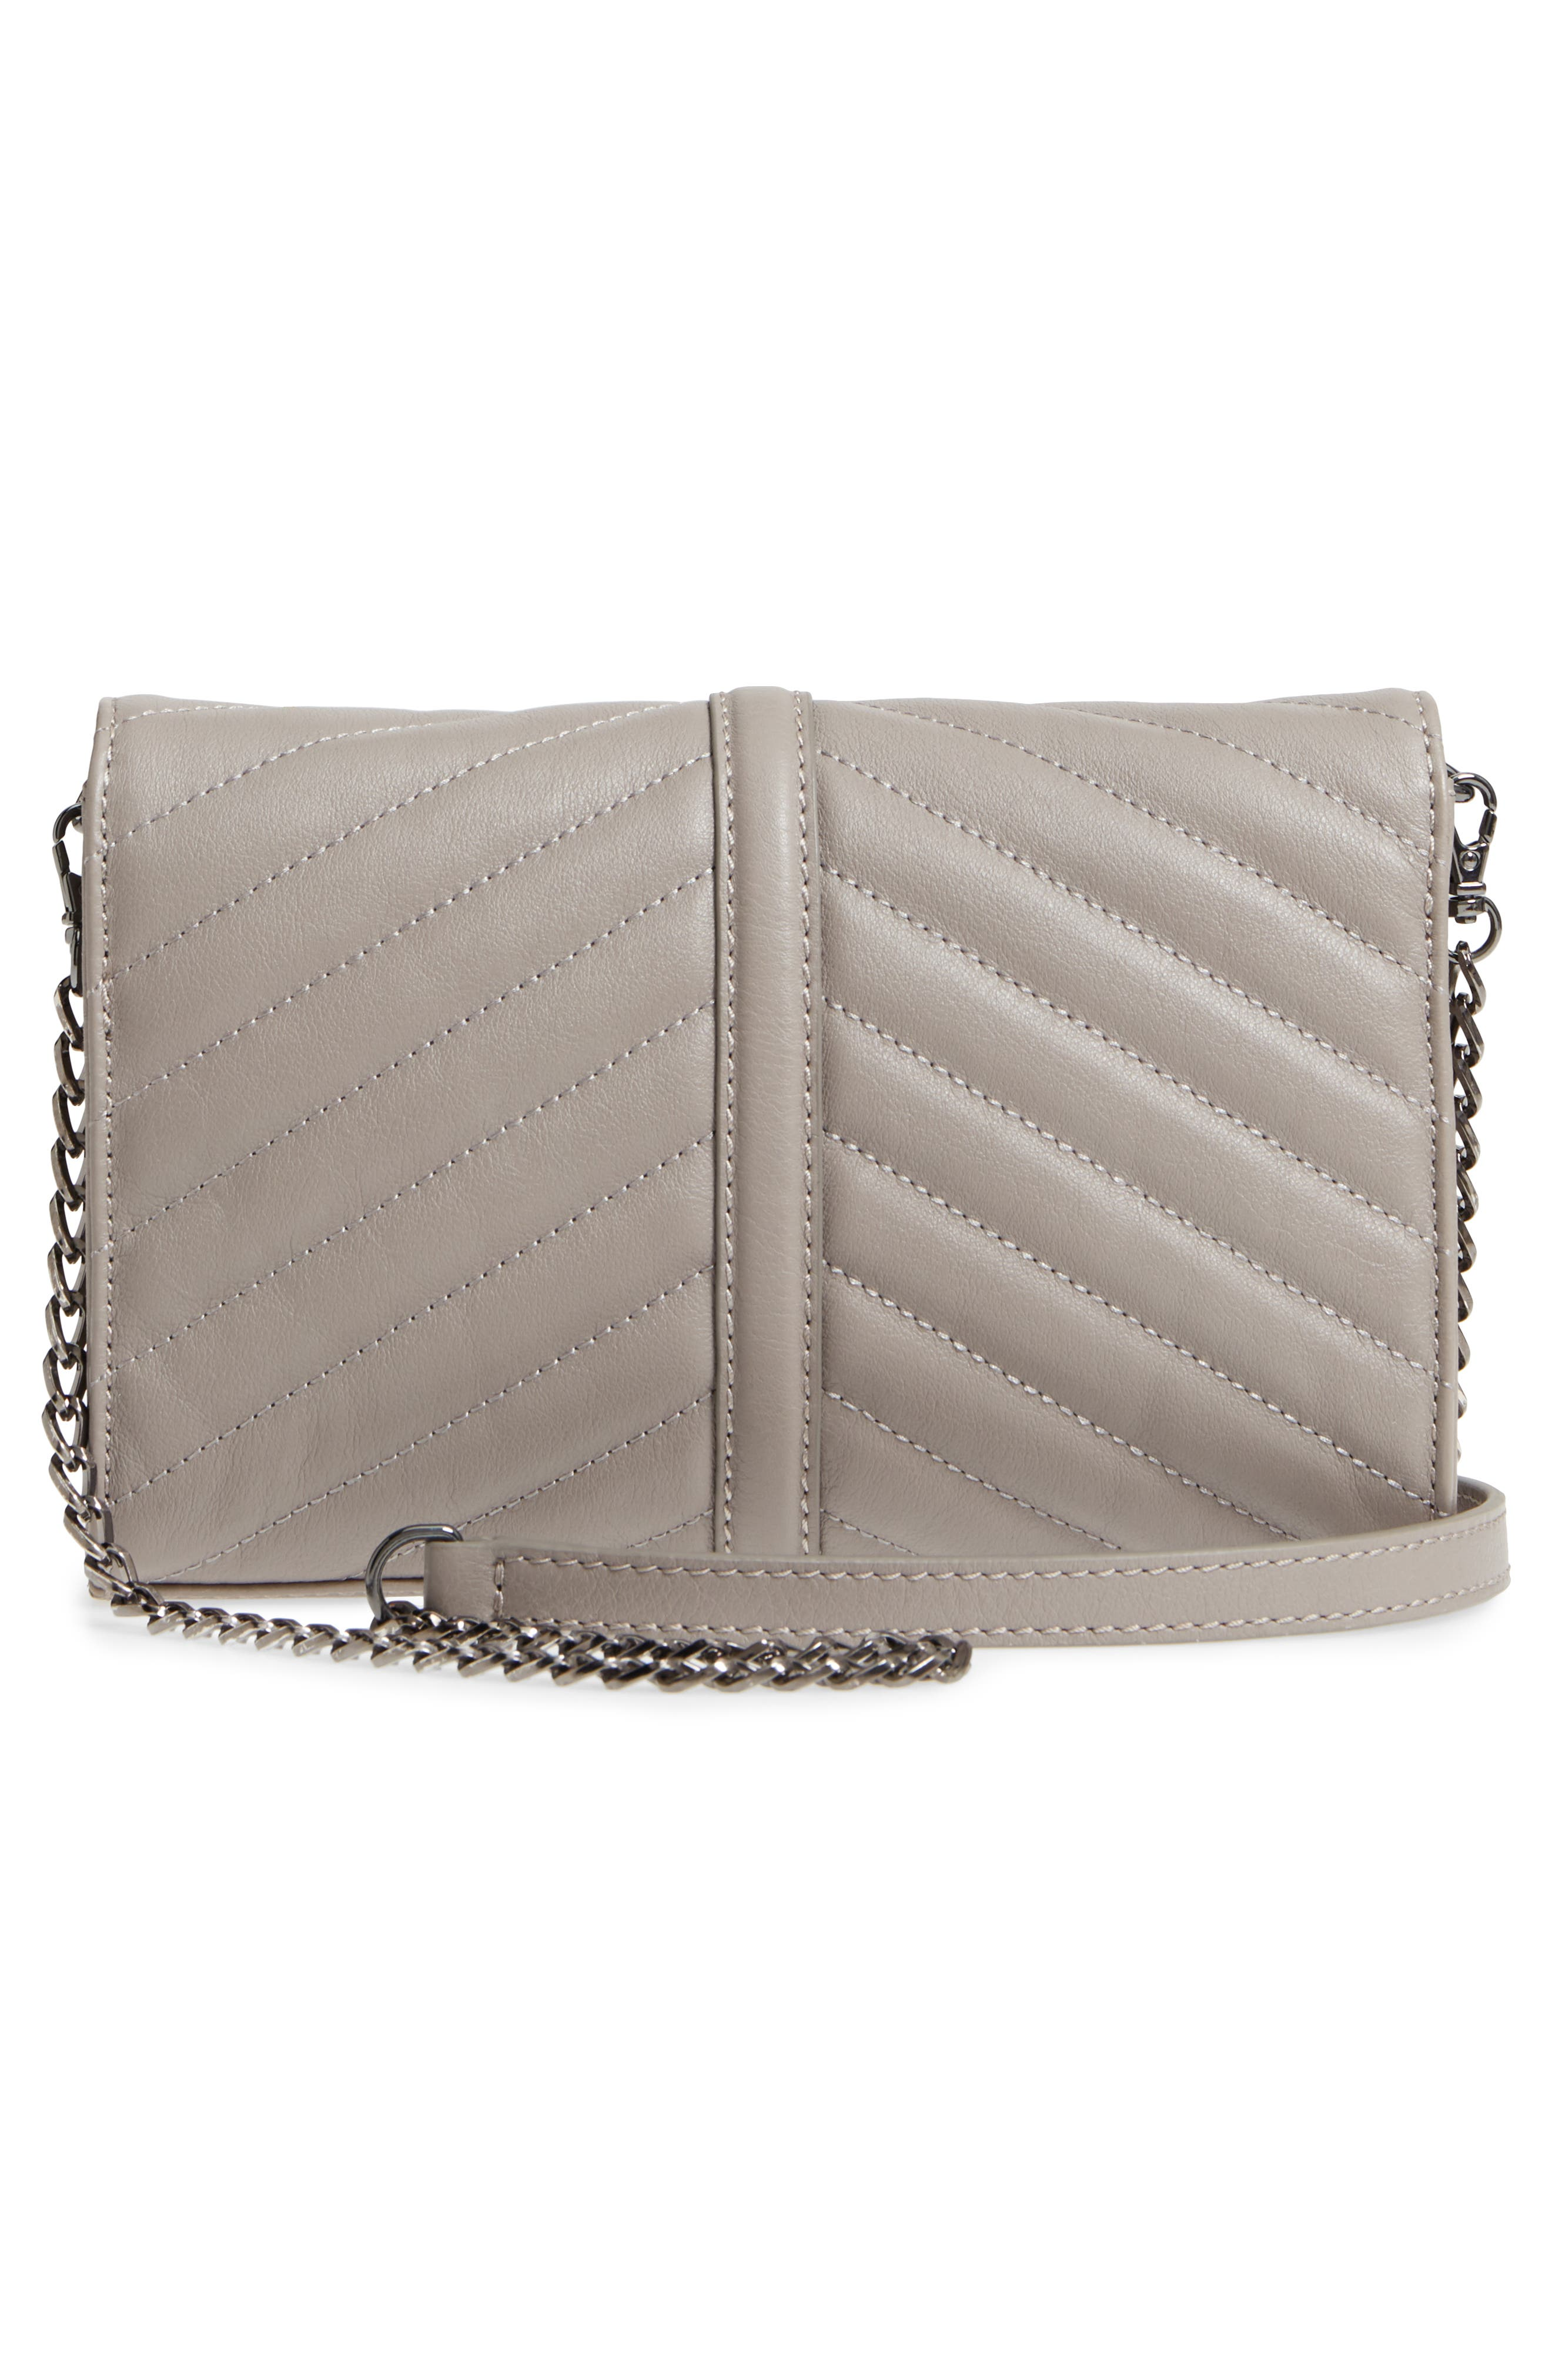 Dakota Quilted Leather Clutch,                             Alternate thumbnail 3, color,                             020